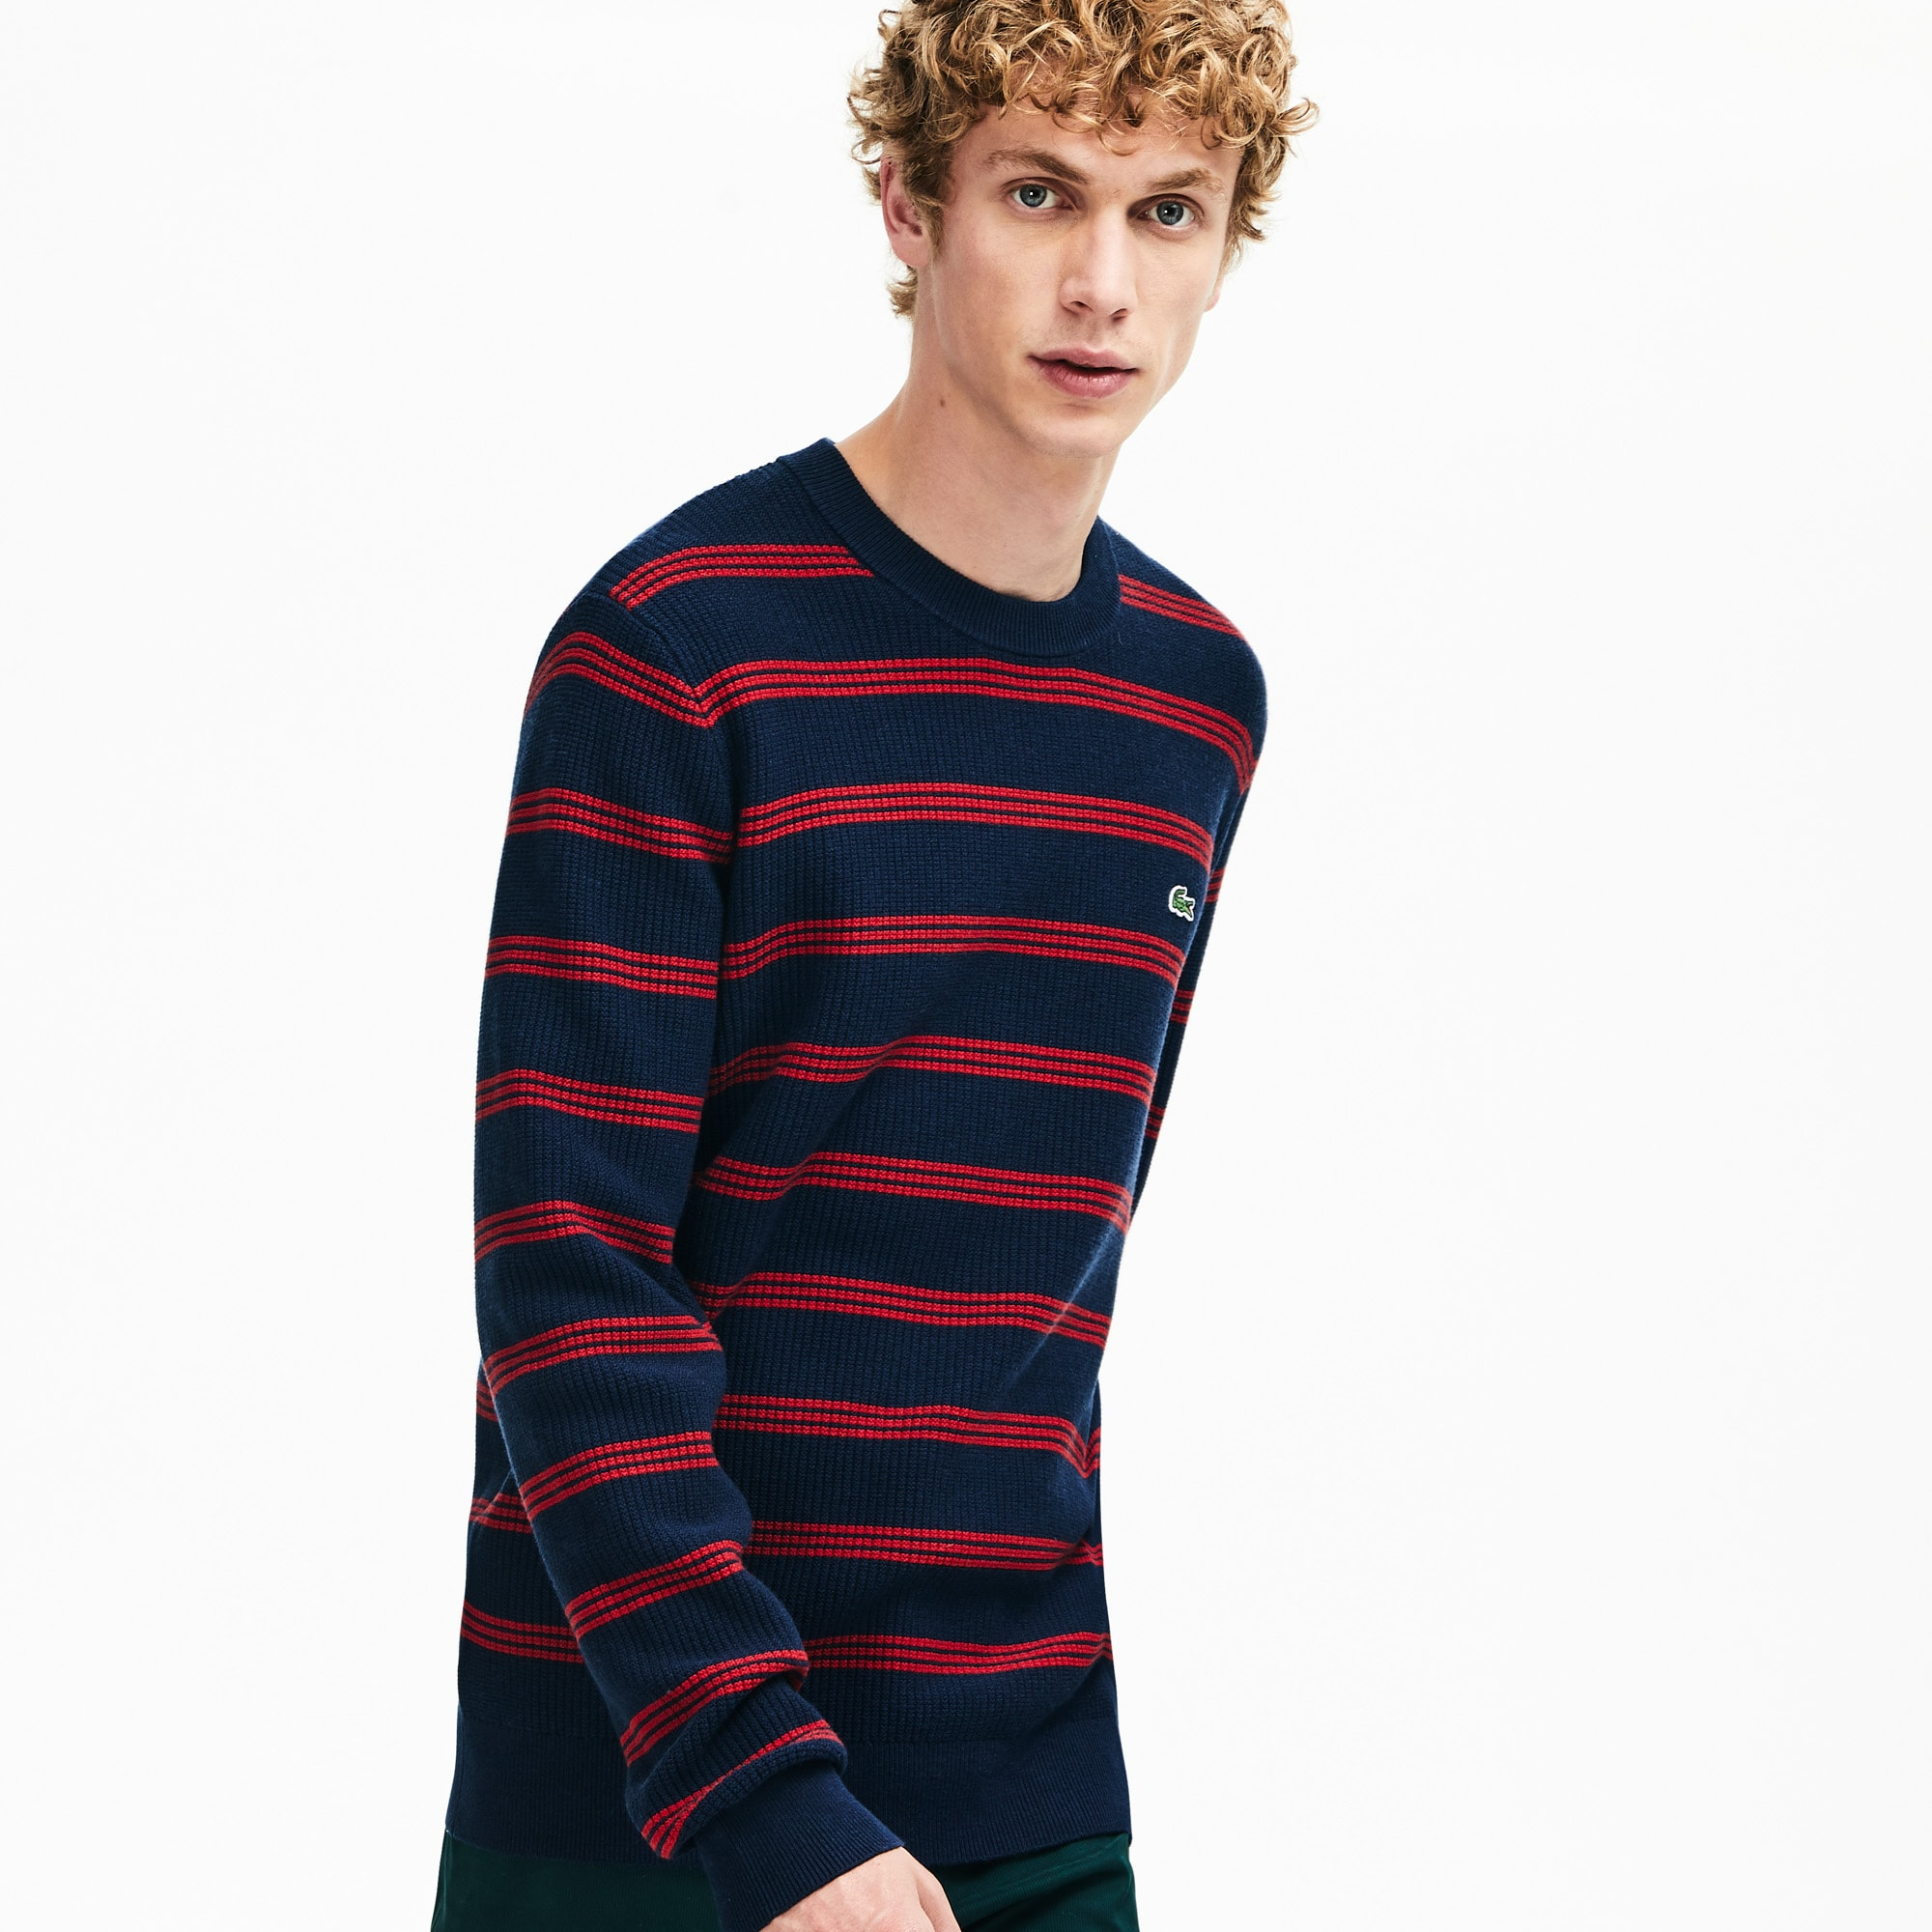 Men's Crewneck Pinstriped Wool and Cotton Sweater